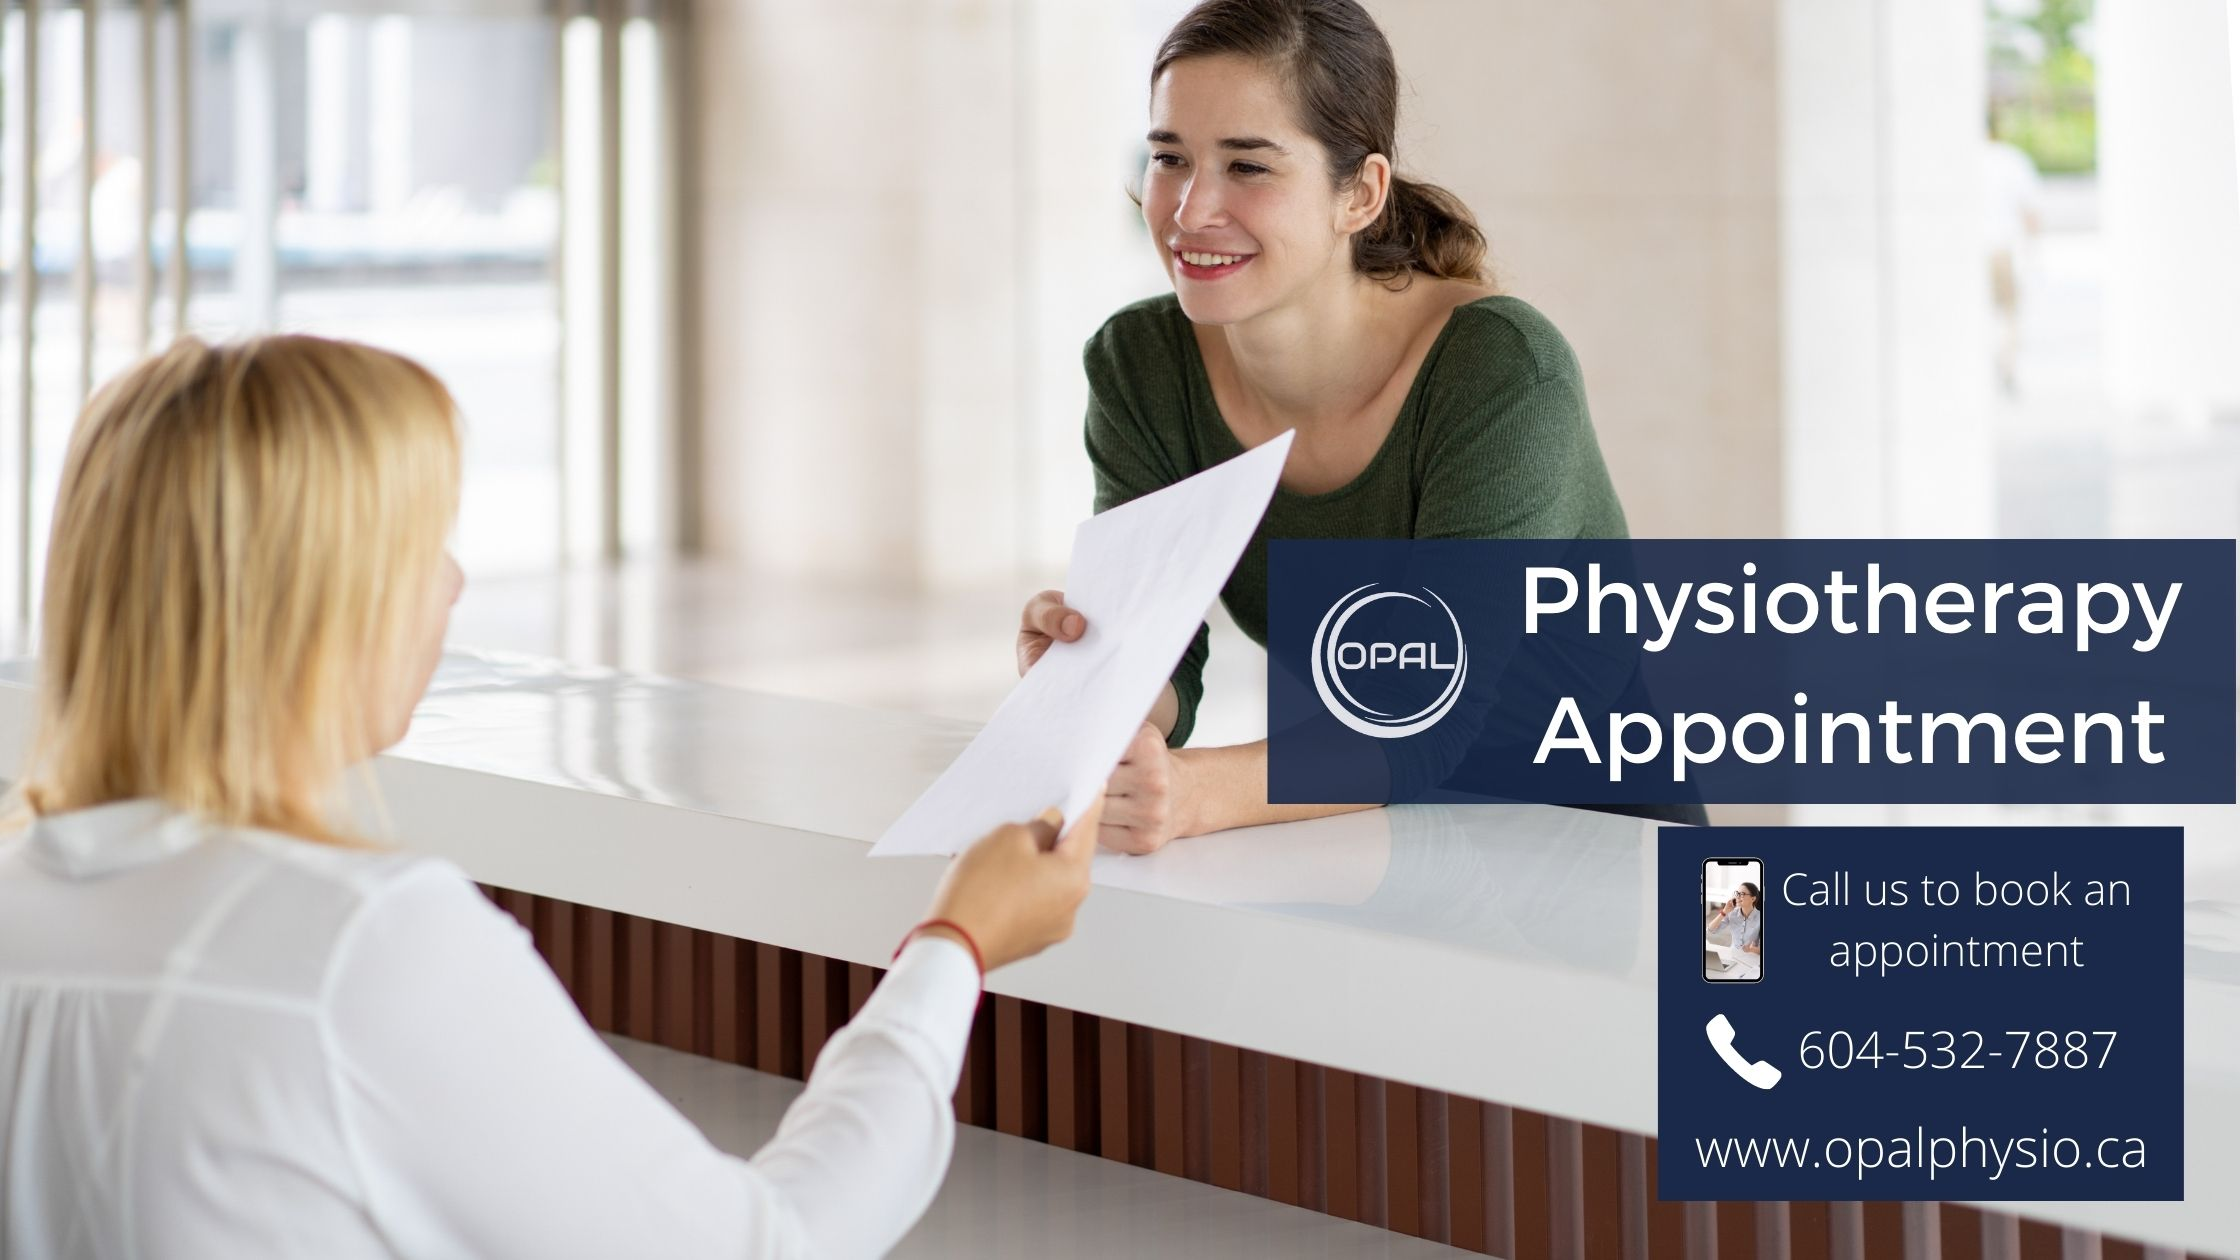 New Physiotherapy Booking Appointment